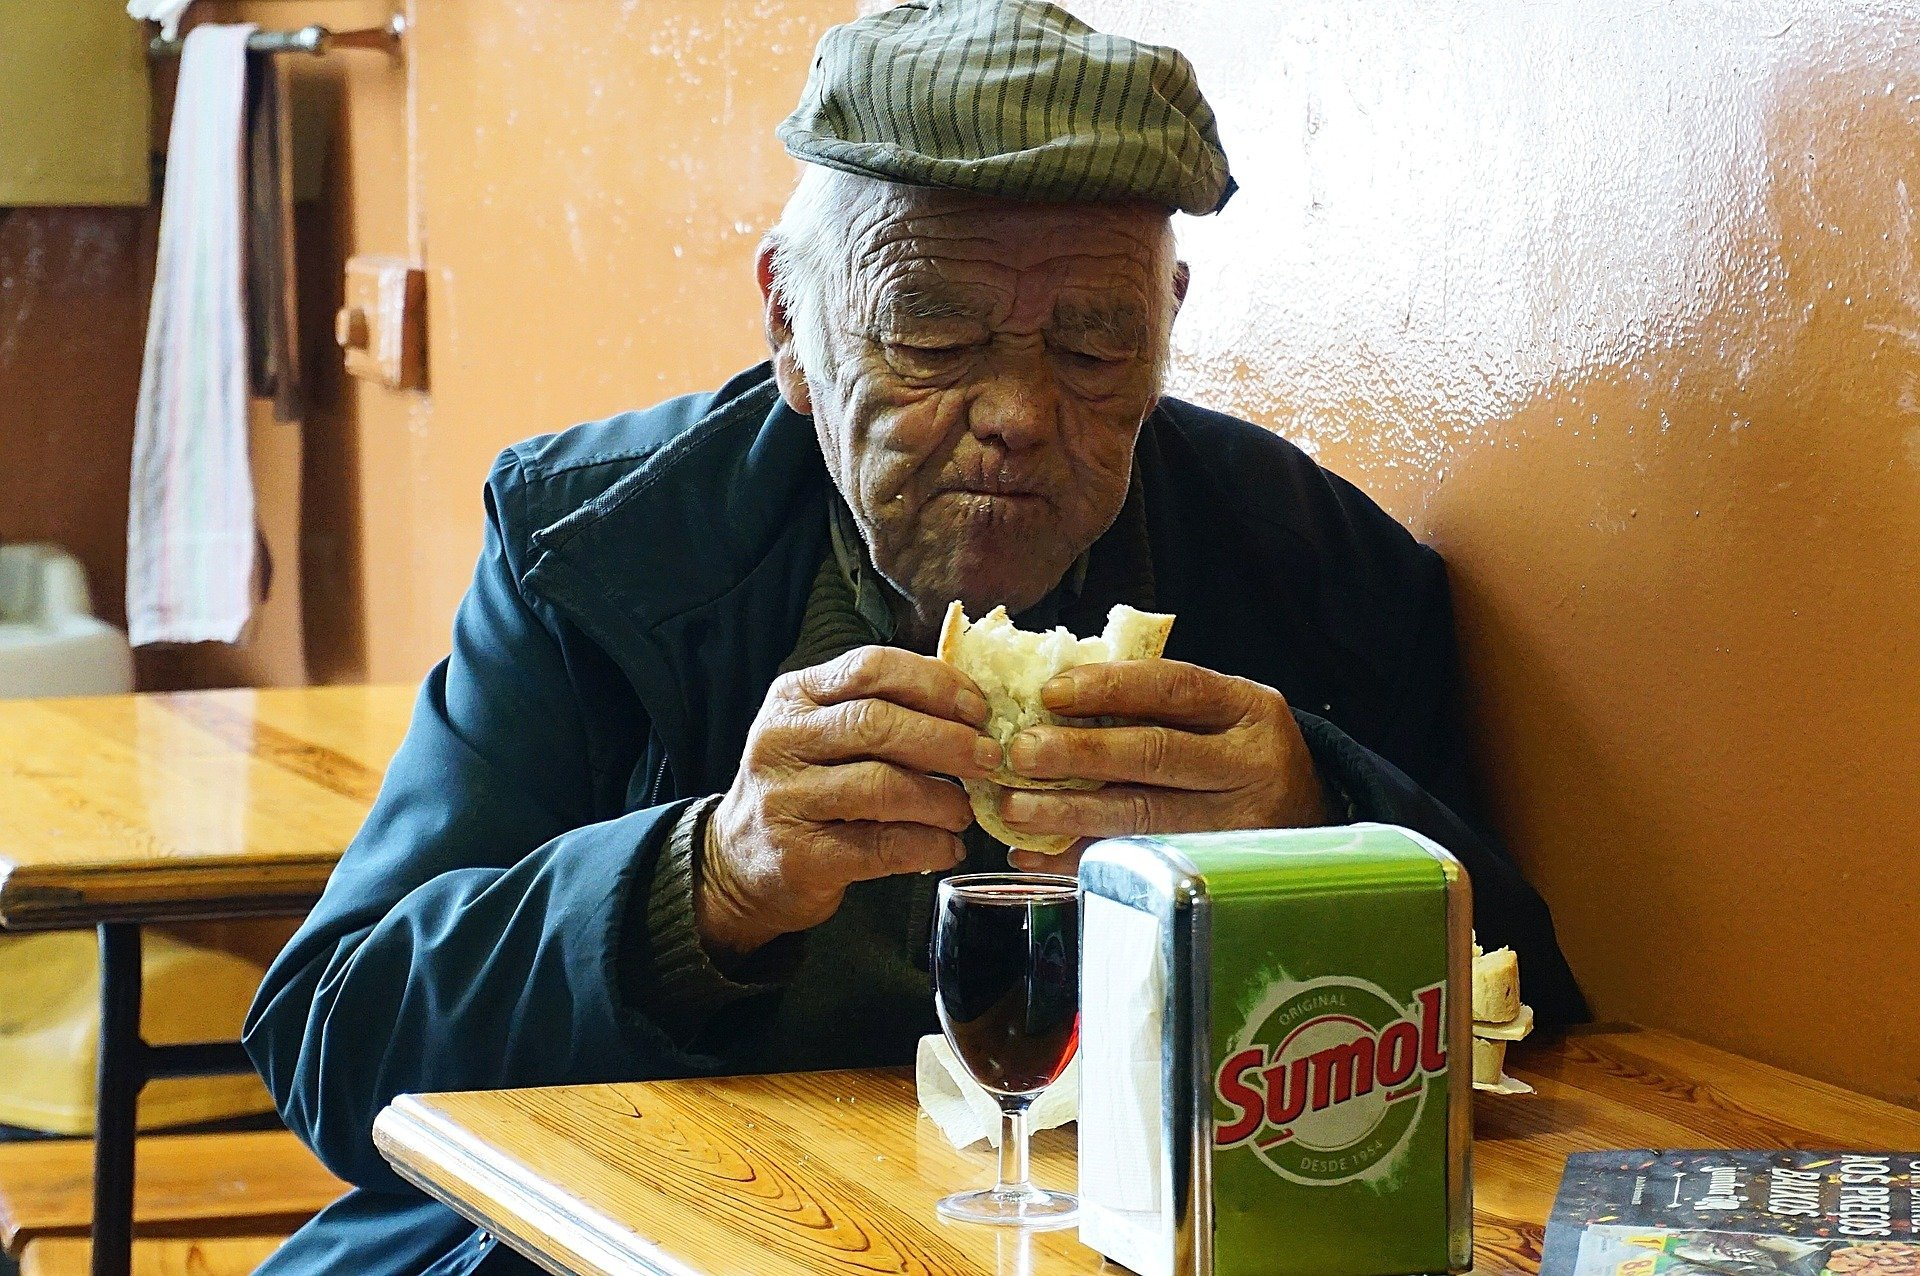 An old man sitting and eating a meal at a restaurant   Photo: Pixabay/Antonio Valente